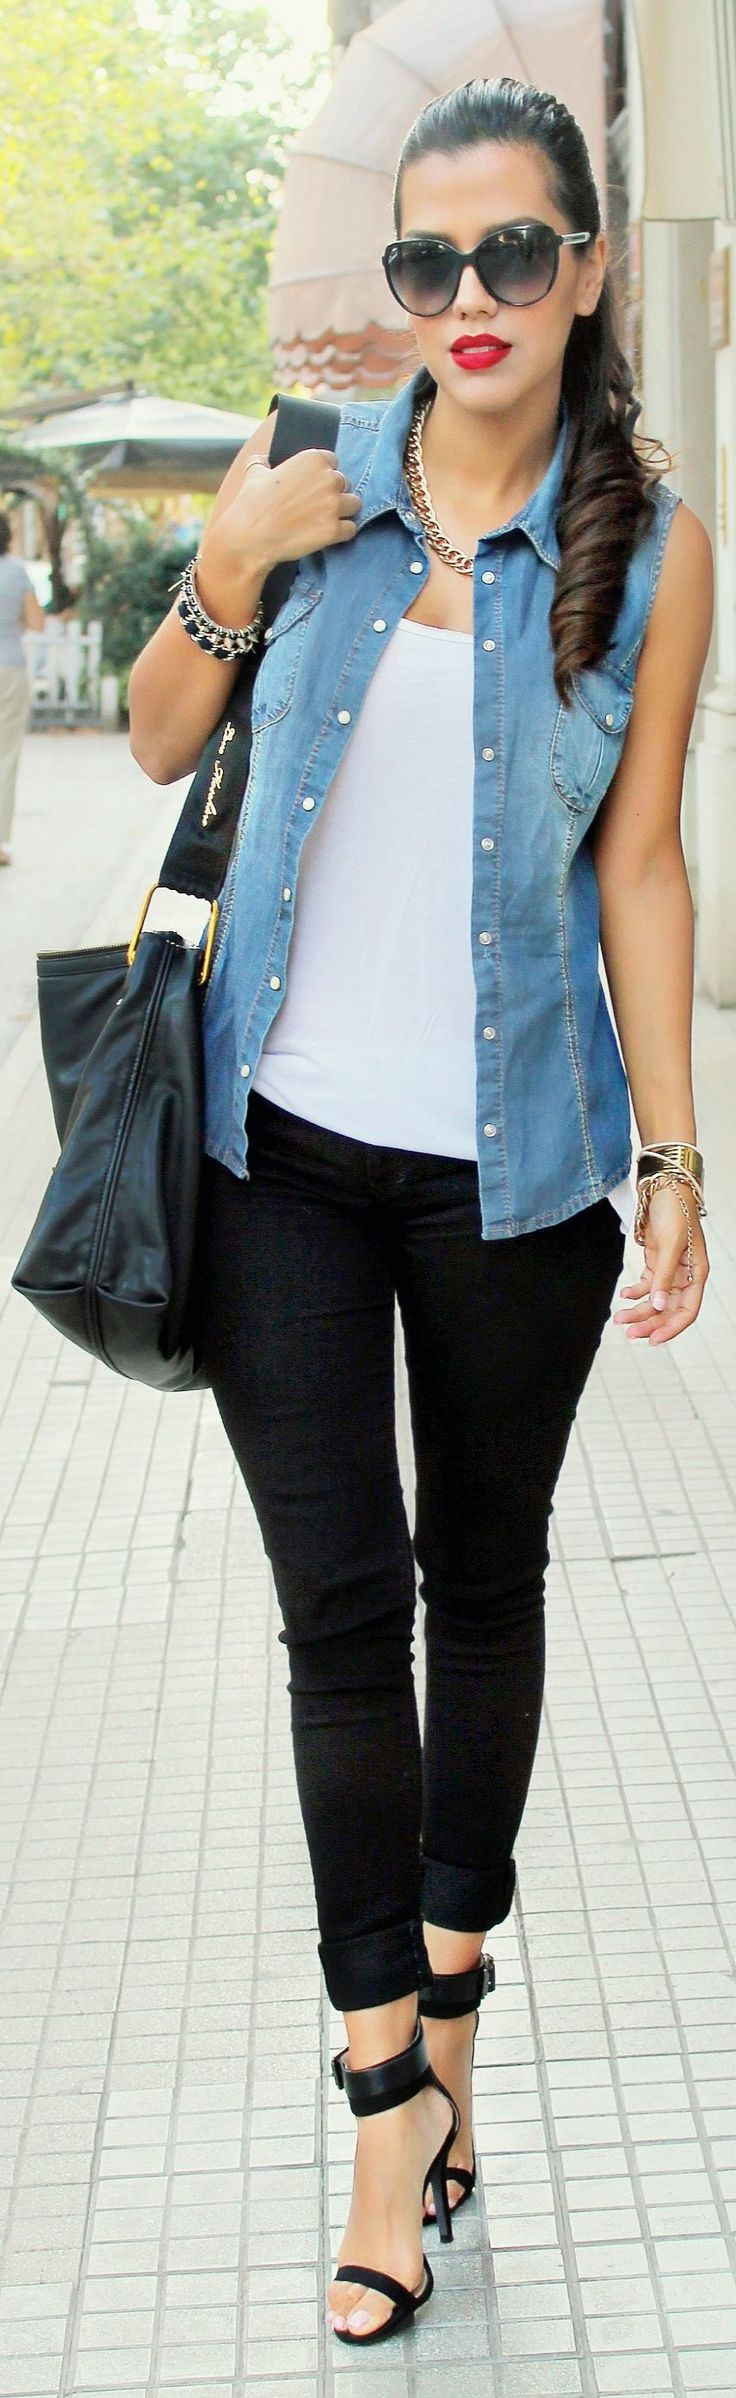 0                                                  It's All About Denim                       by Be Chic And Cheap